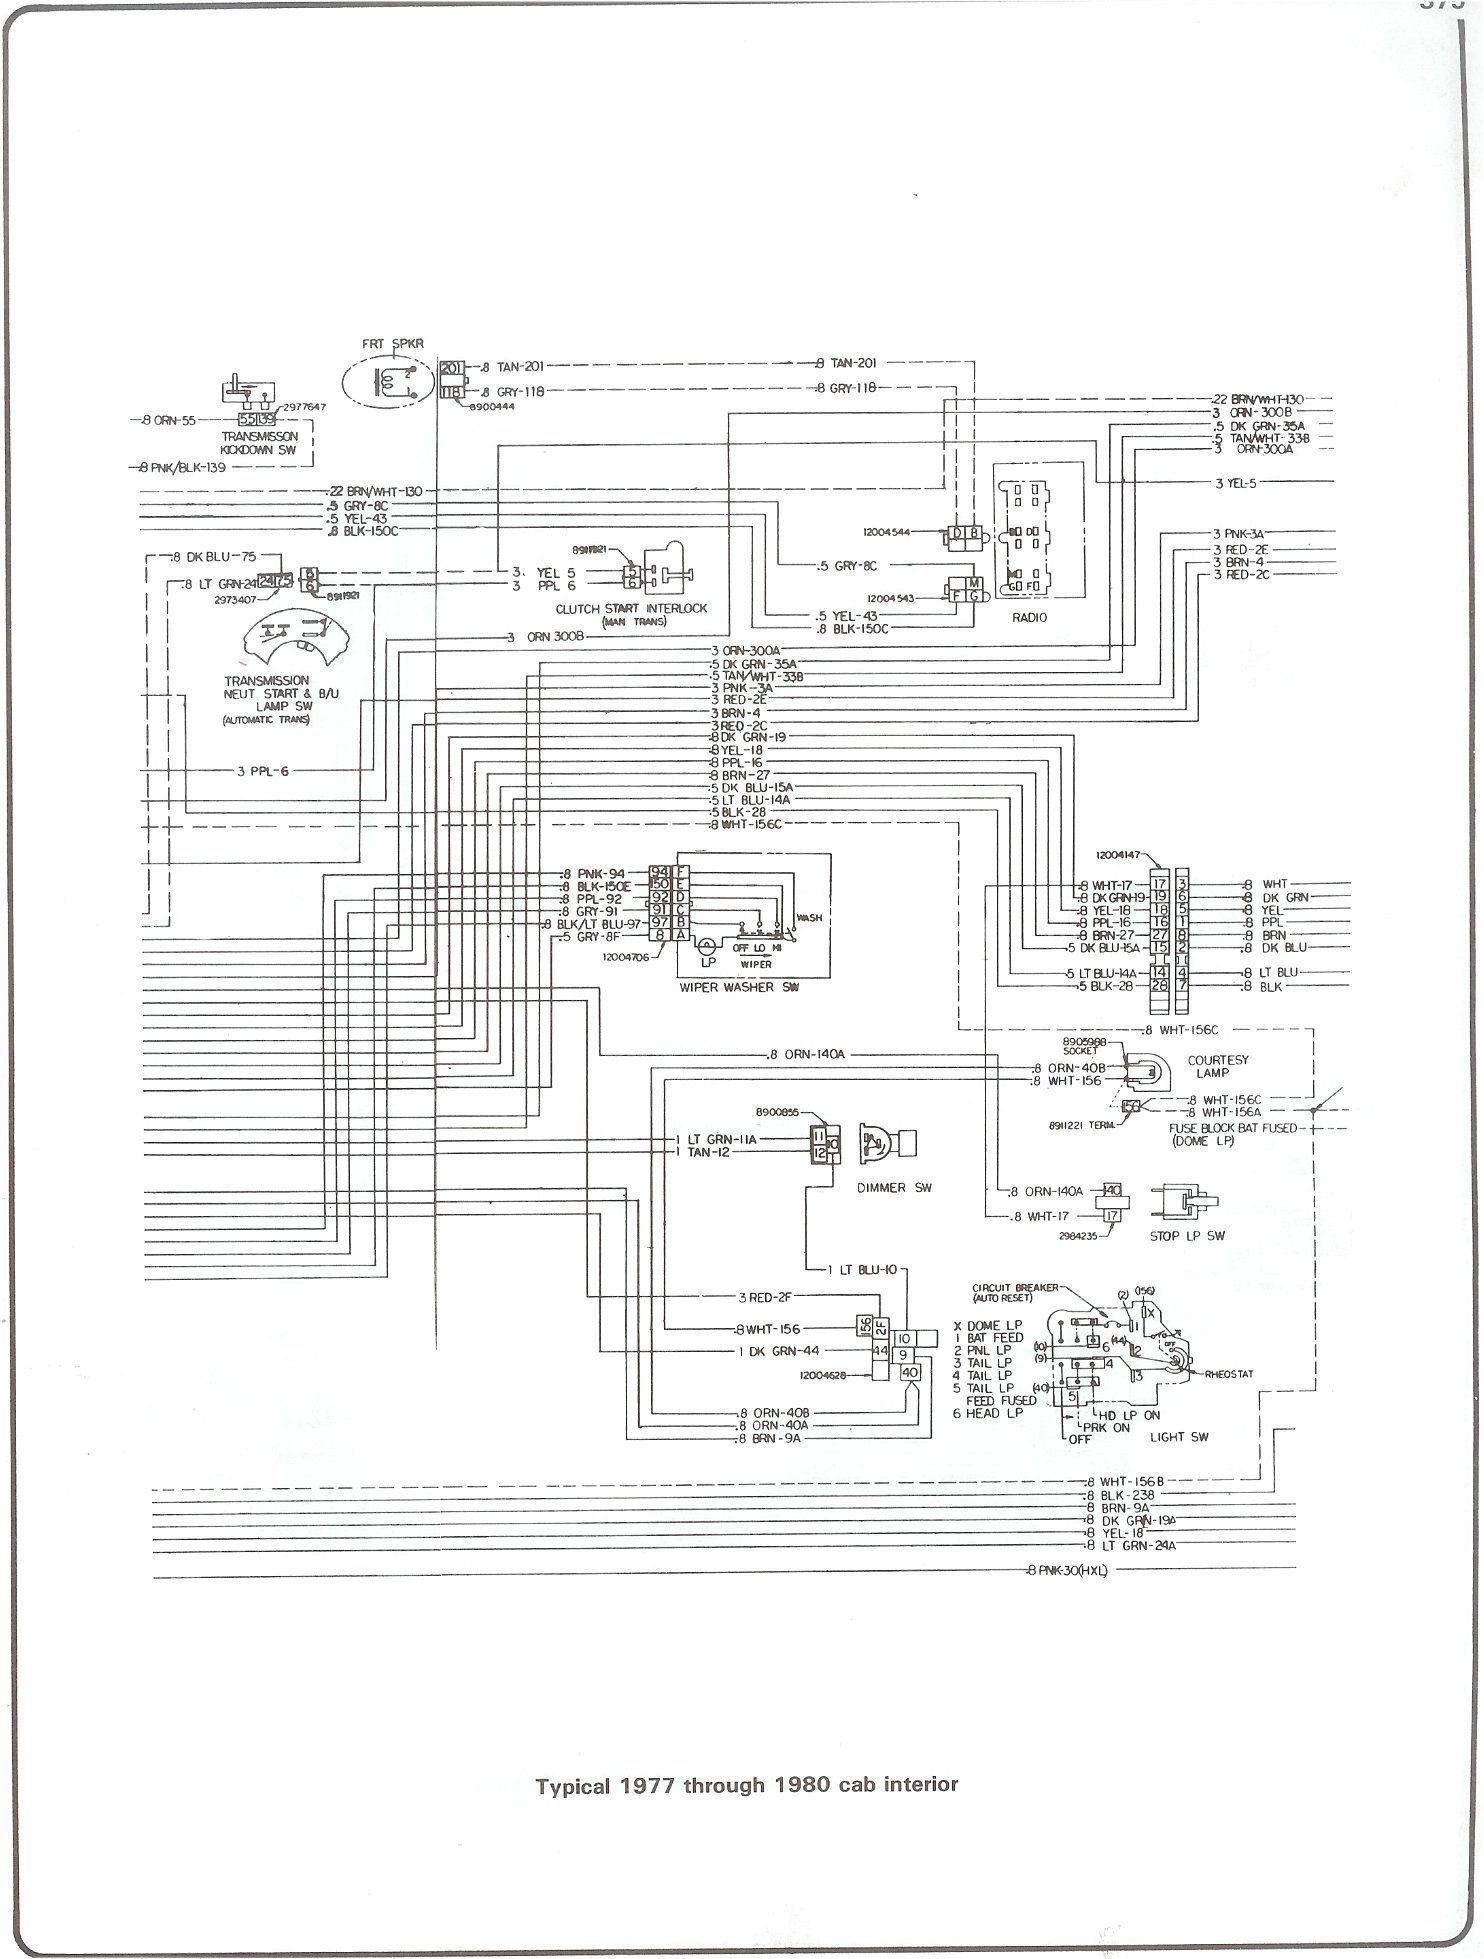 77 80_cab_inter complete 73 87 wiring diagrams c10 wiring diagram at n-0.co